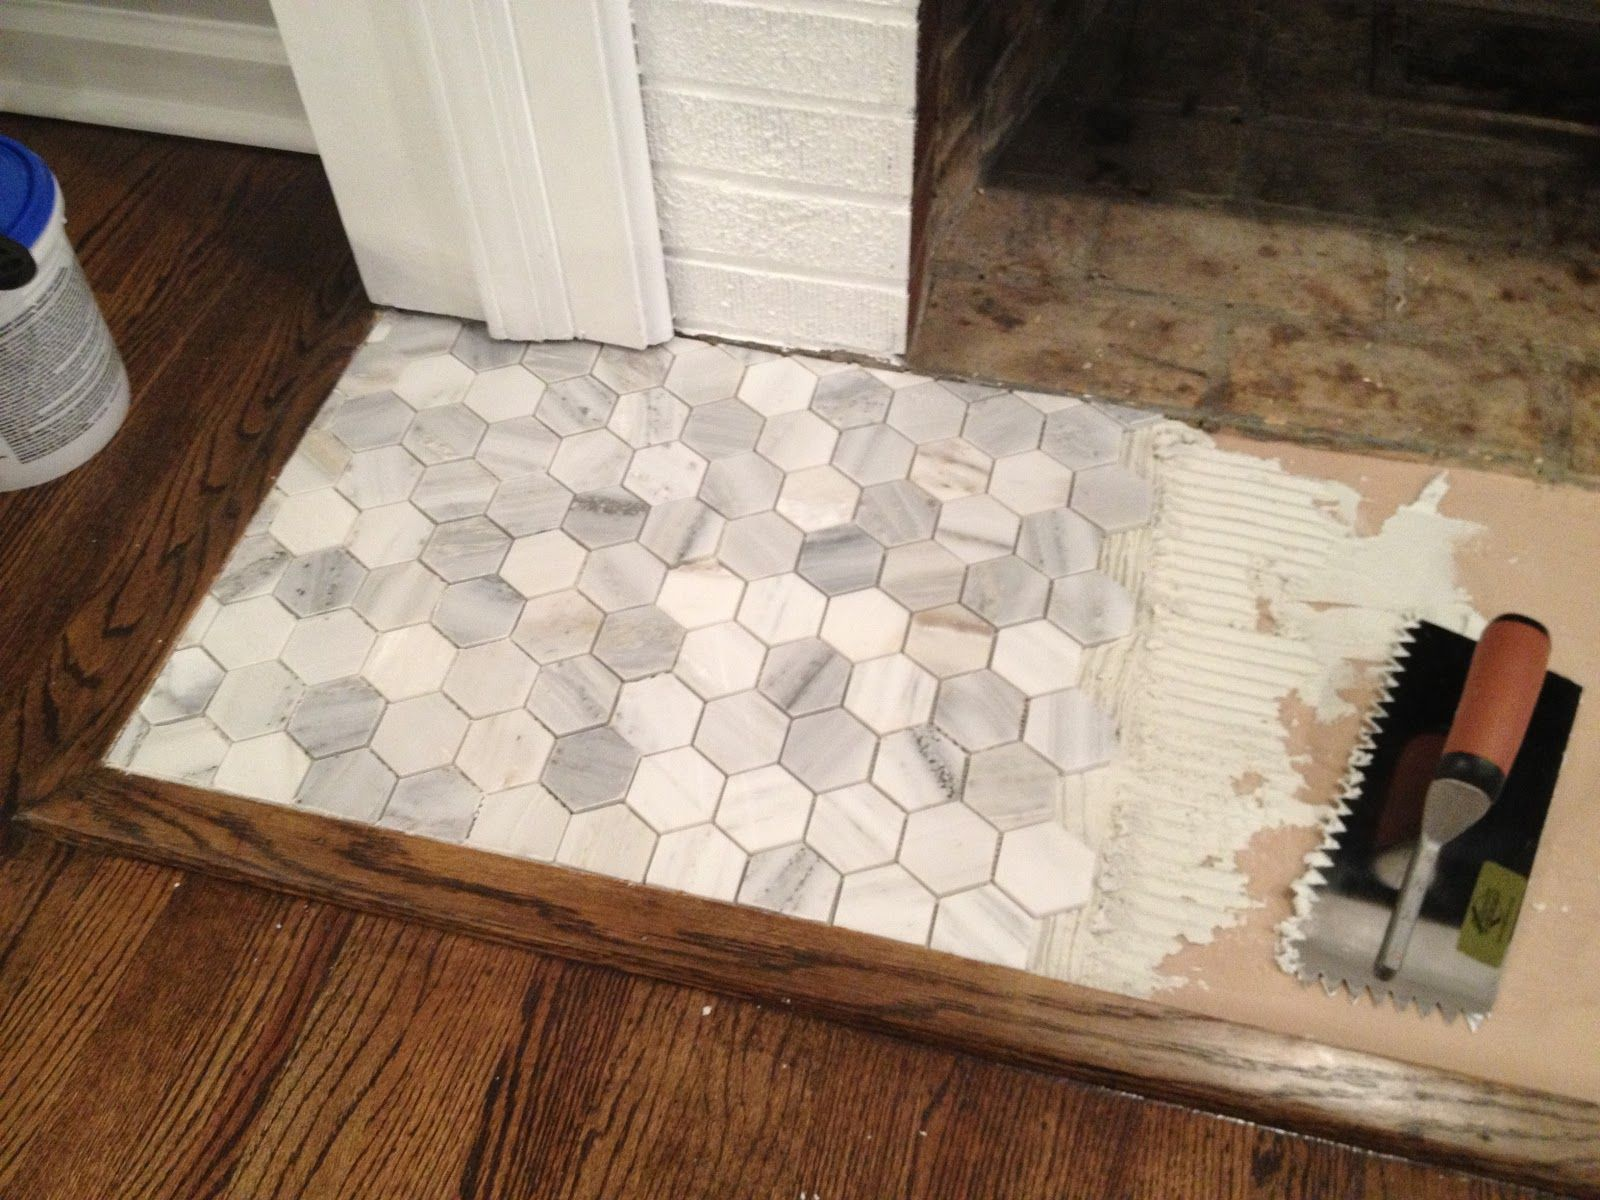 Pin by pam prouty on fireplace ideas pinterest bathroom inspo room fireplace updatefireplace tilesfireplace dailygadgetfo Choice Image